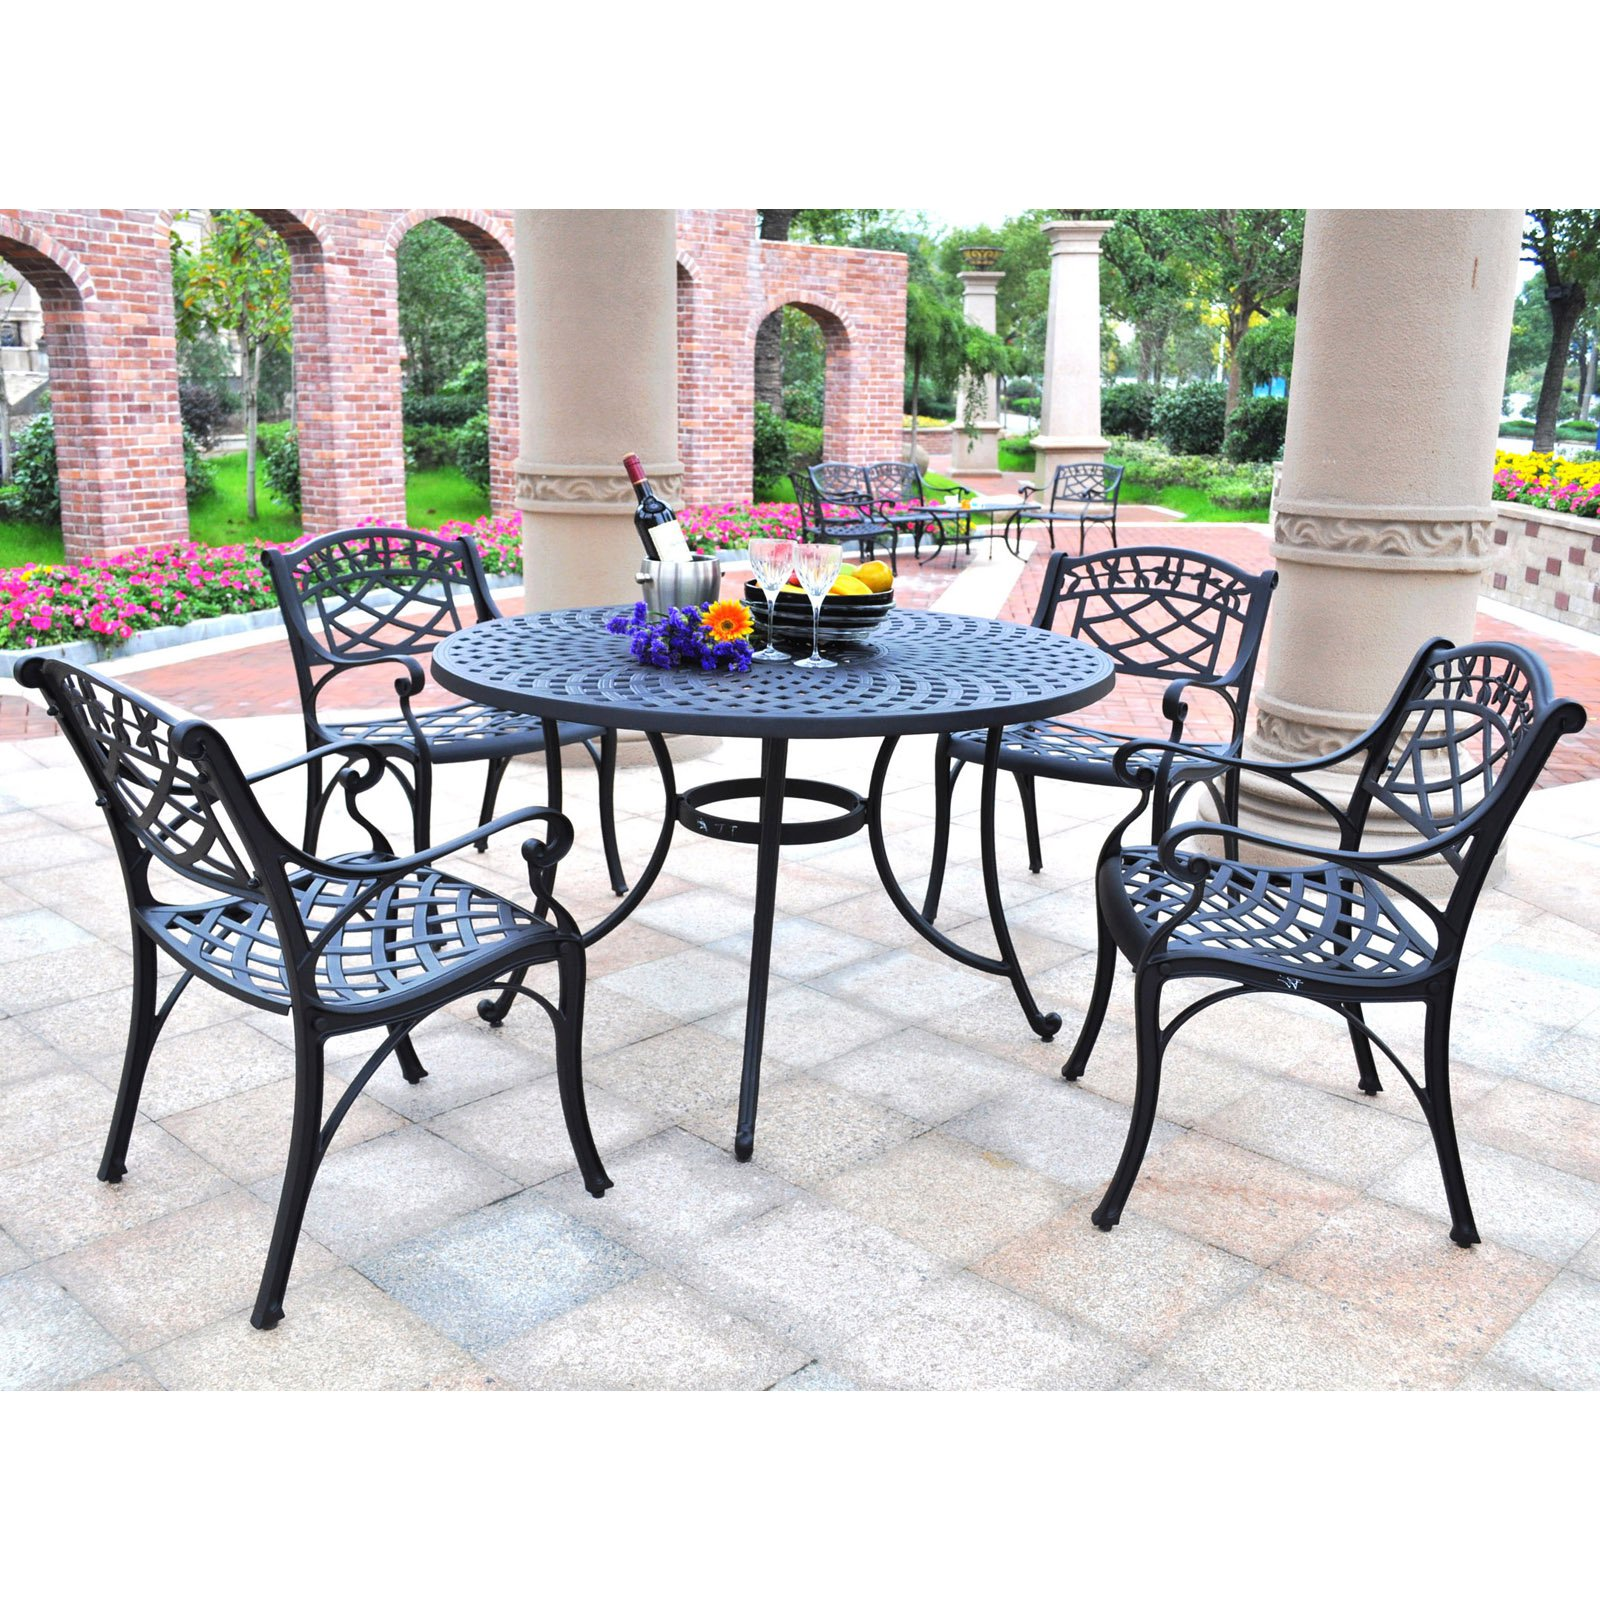 Crosley Sedona 48 in. 5 Piece Cast Aluminum Outdoor Dining Set with Arm Chairs